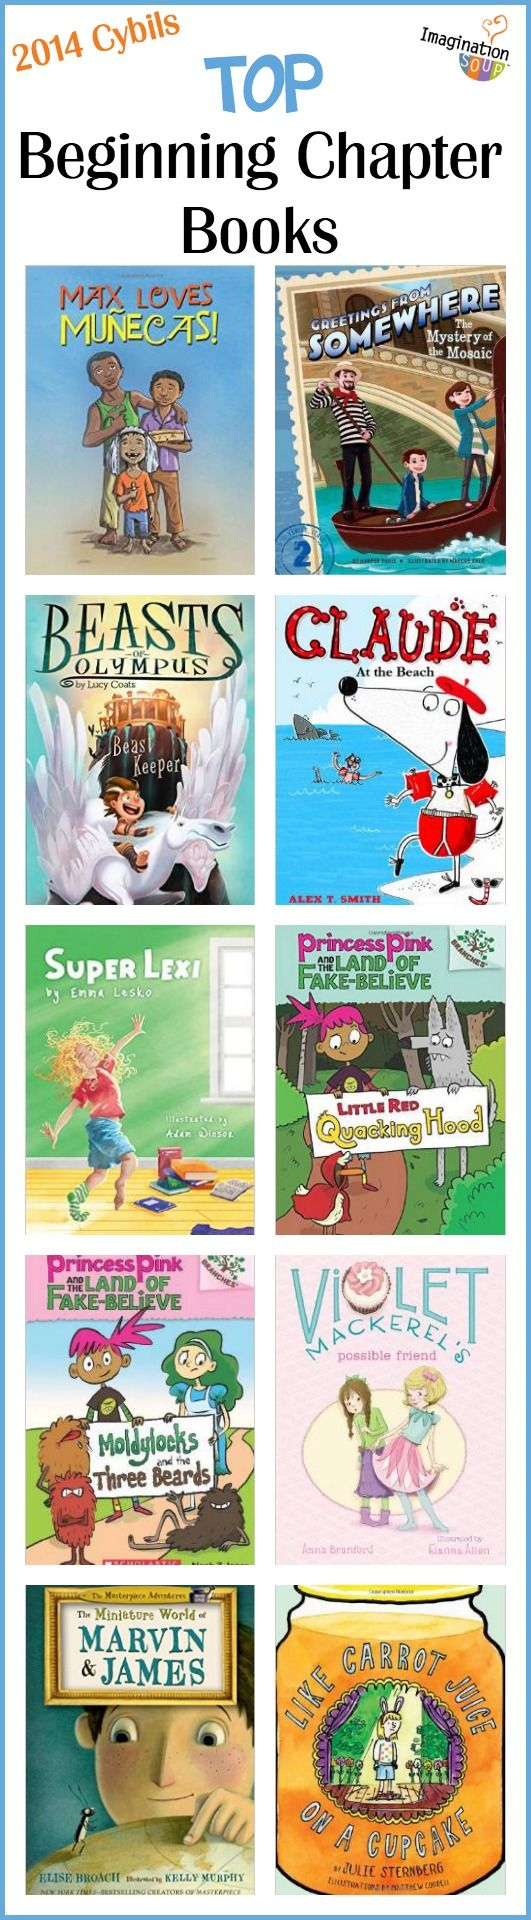 When kids start transitioning to chapter books, they need good easy chapter books. Here are 10 well-written books that kids will love!